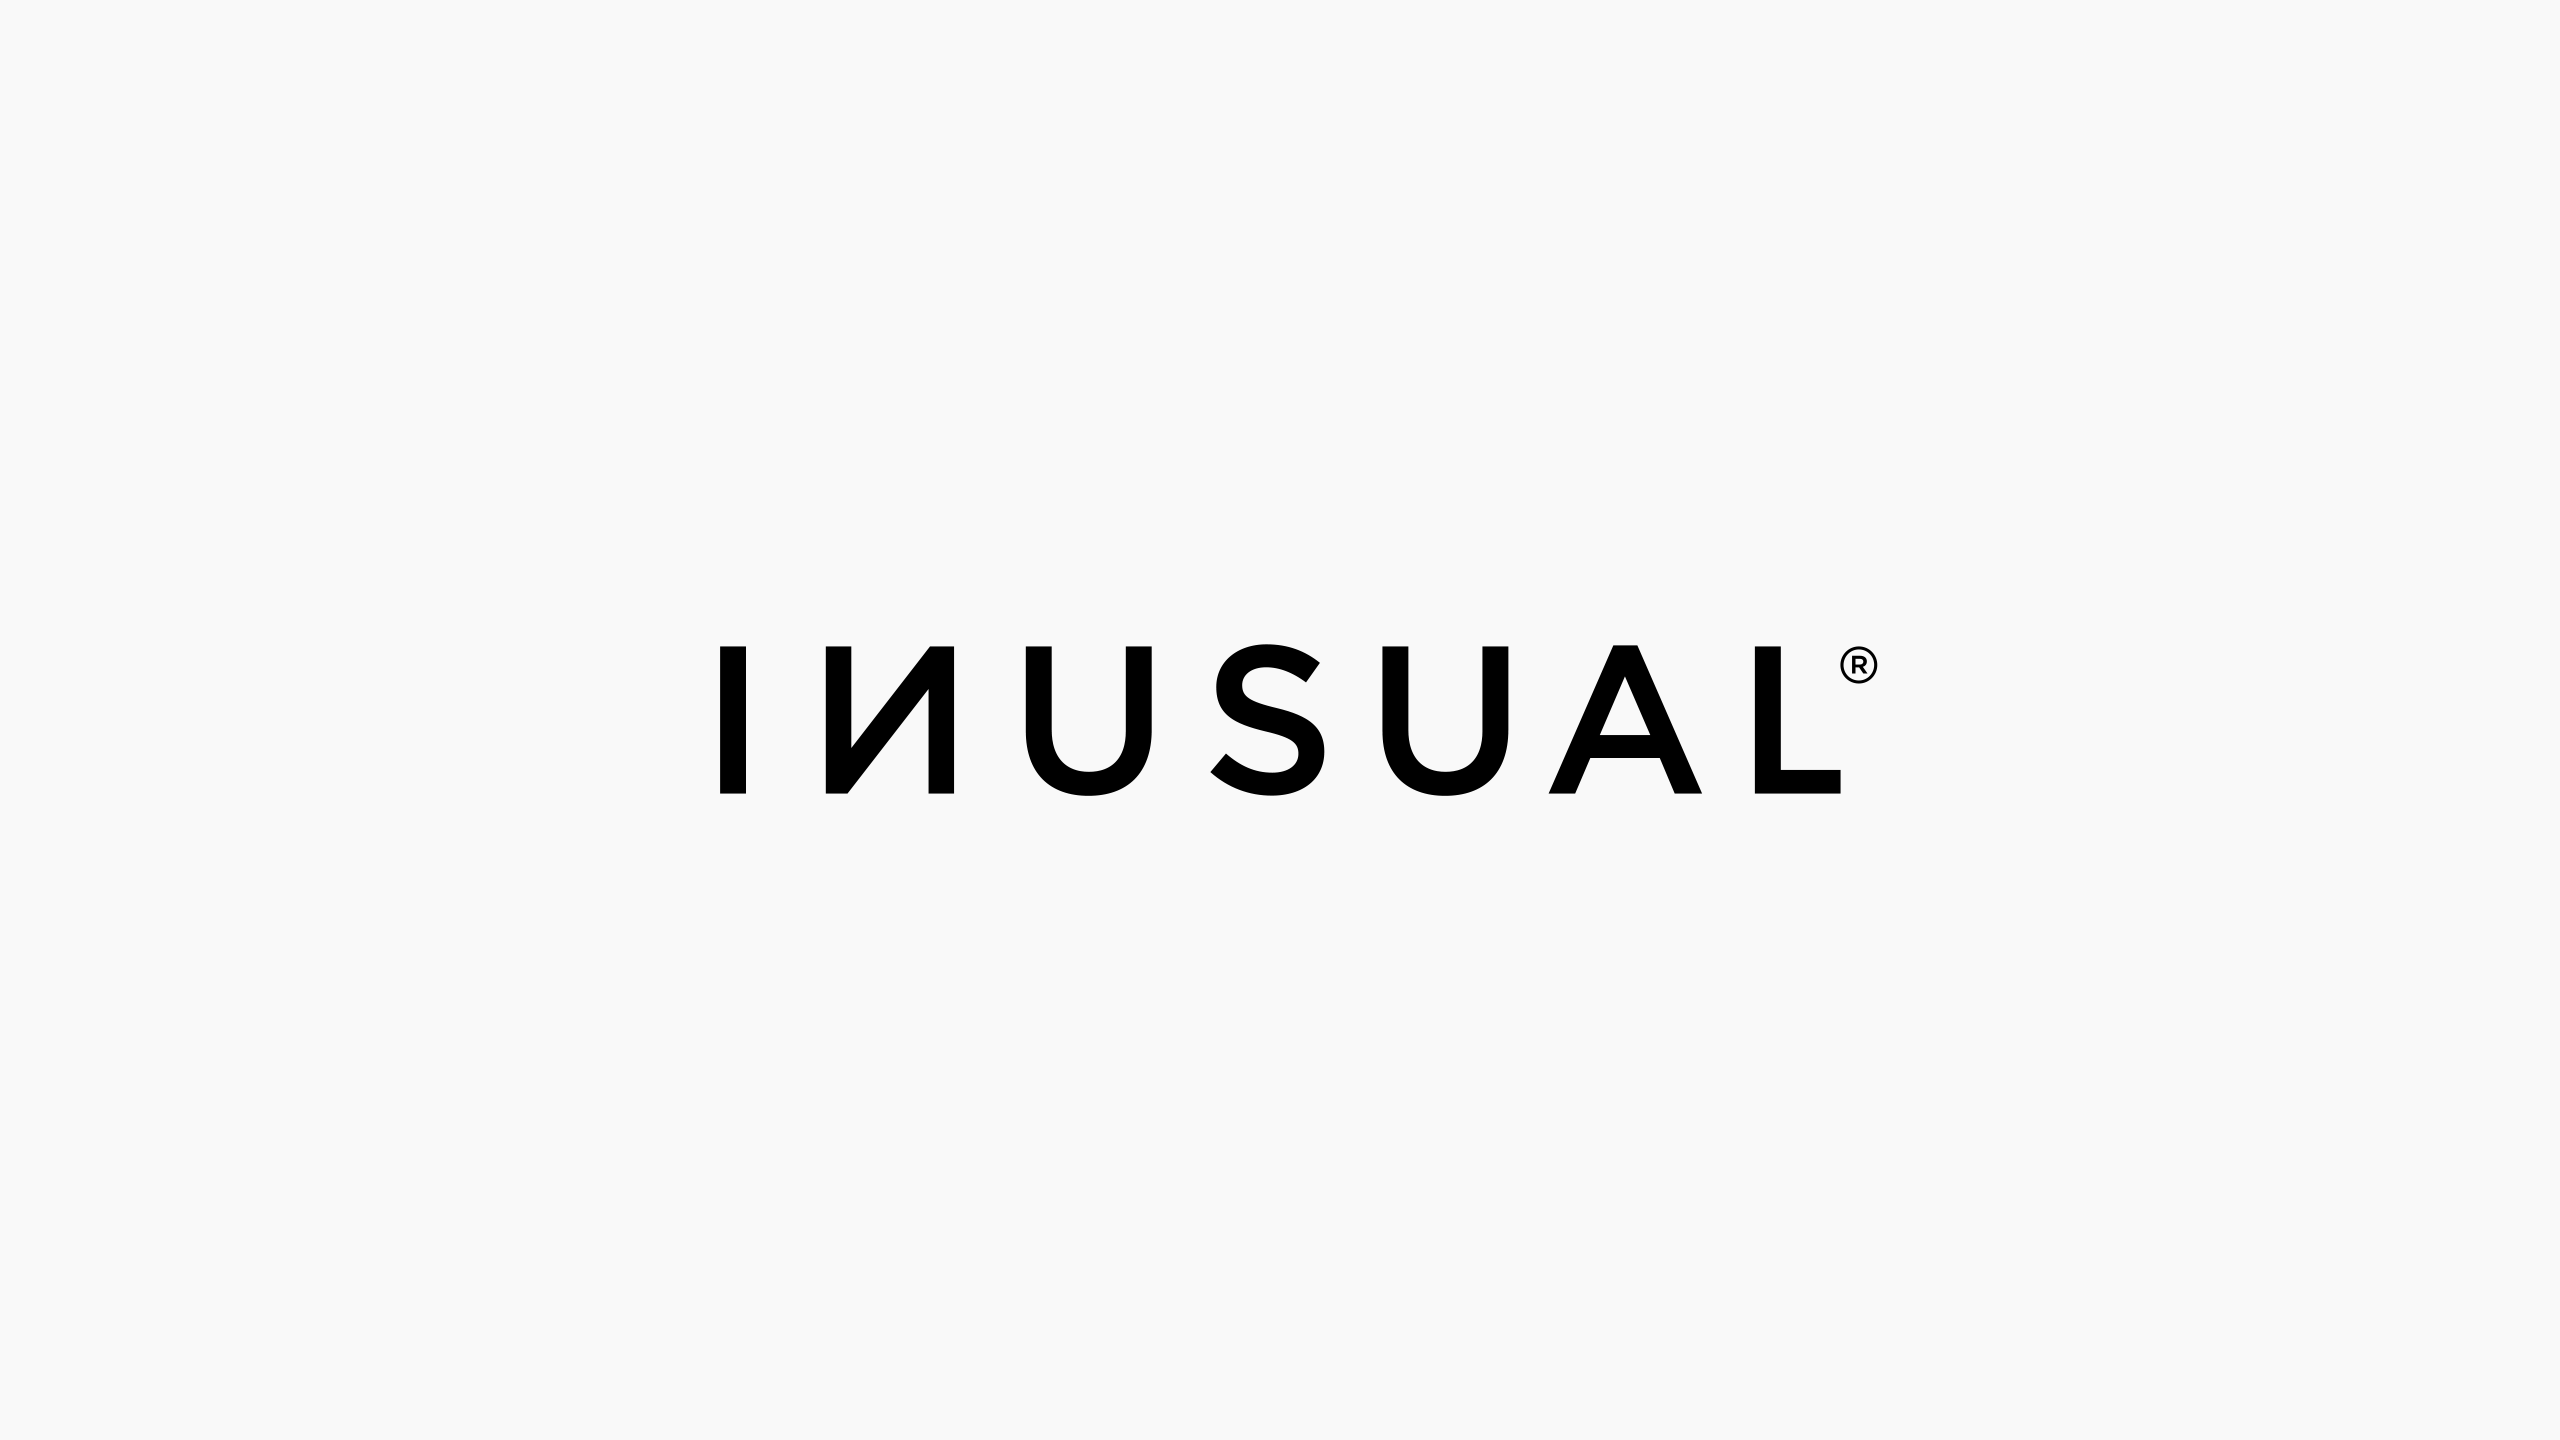 Inusual